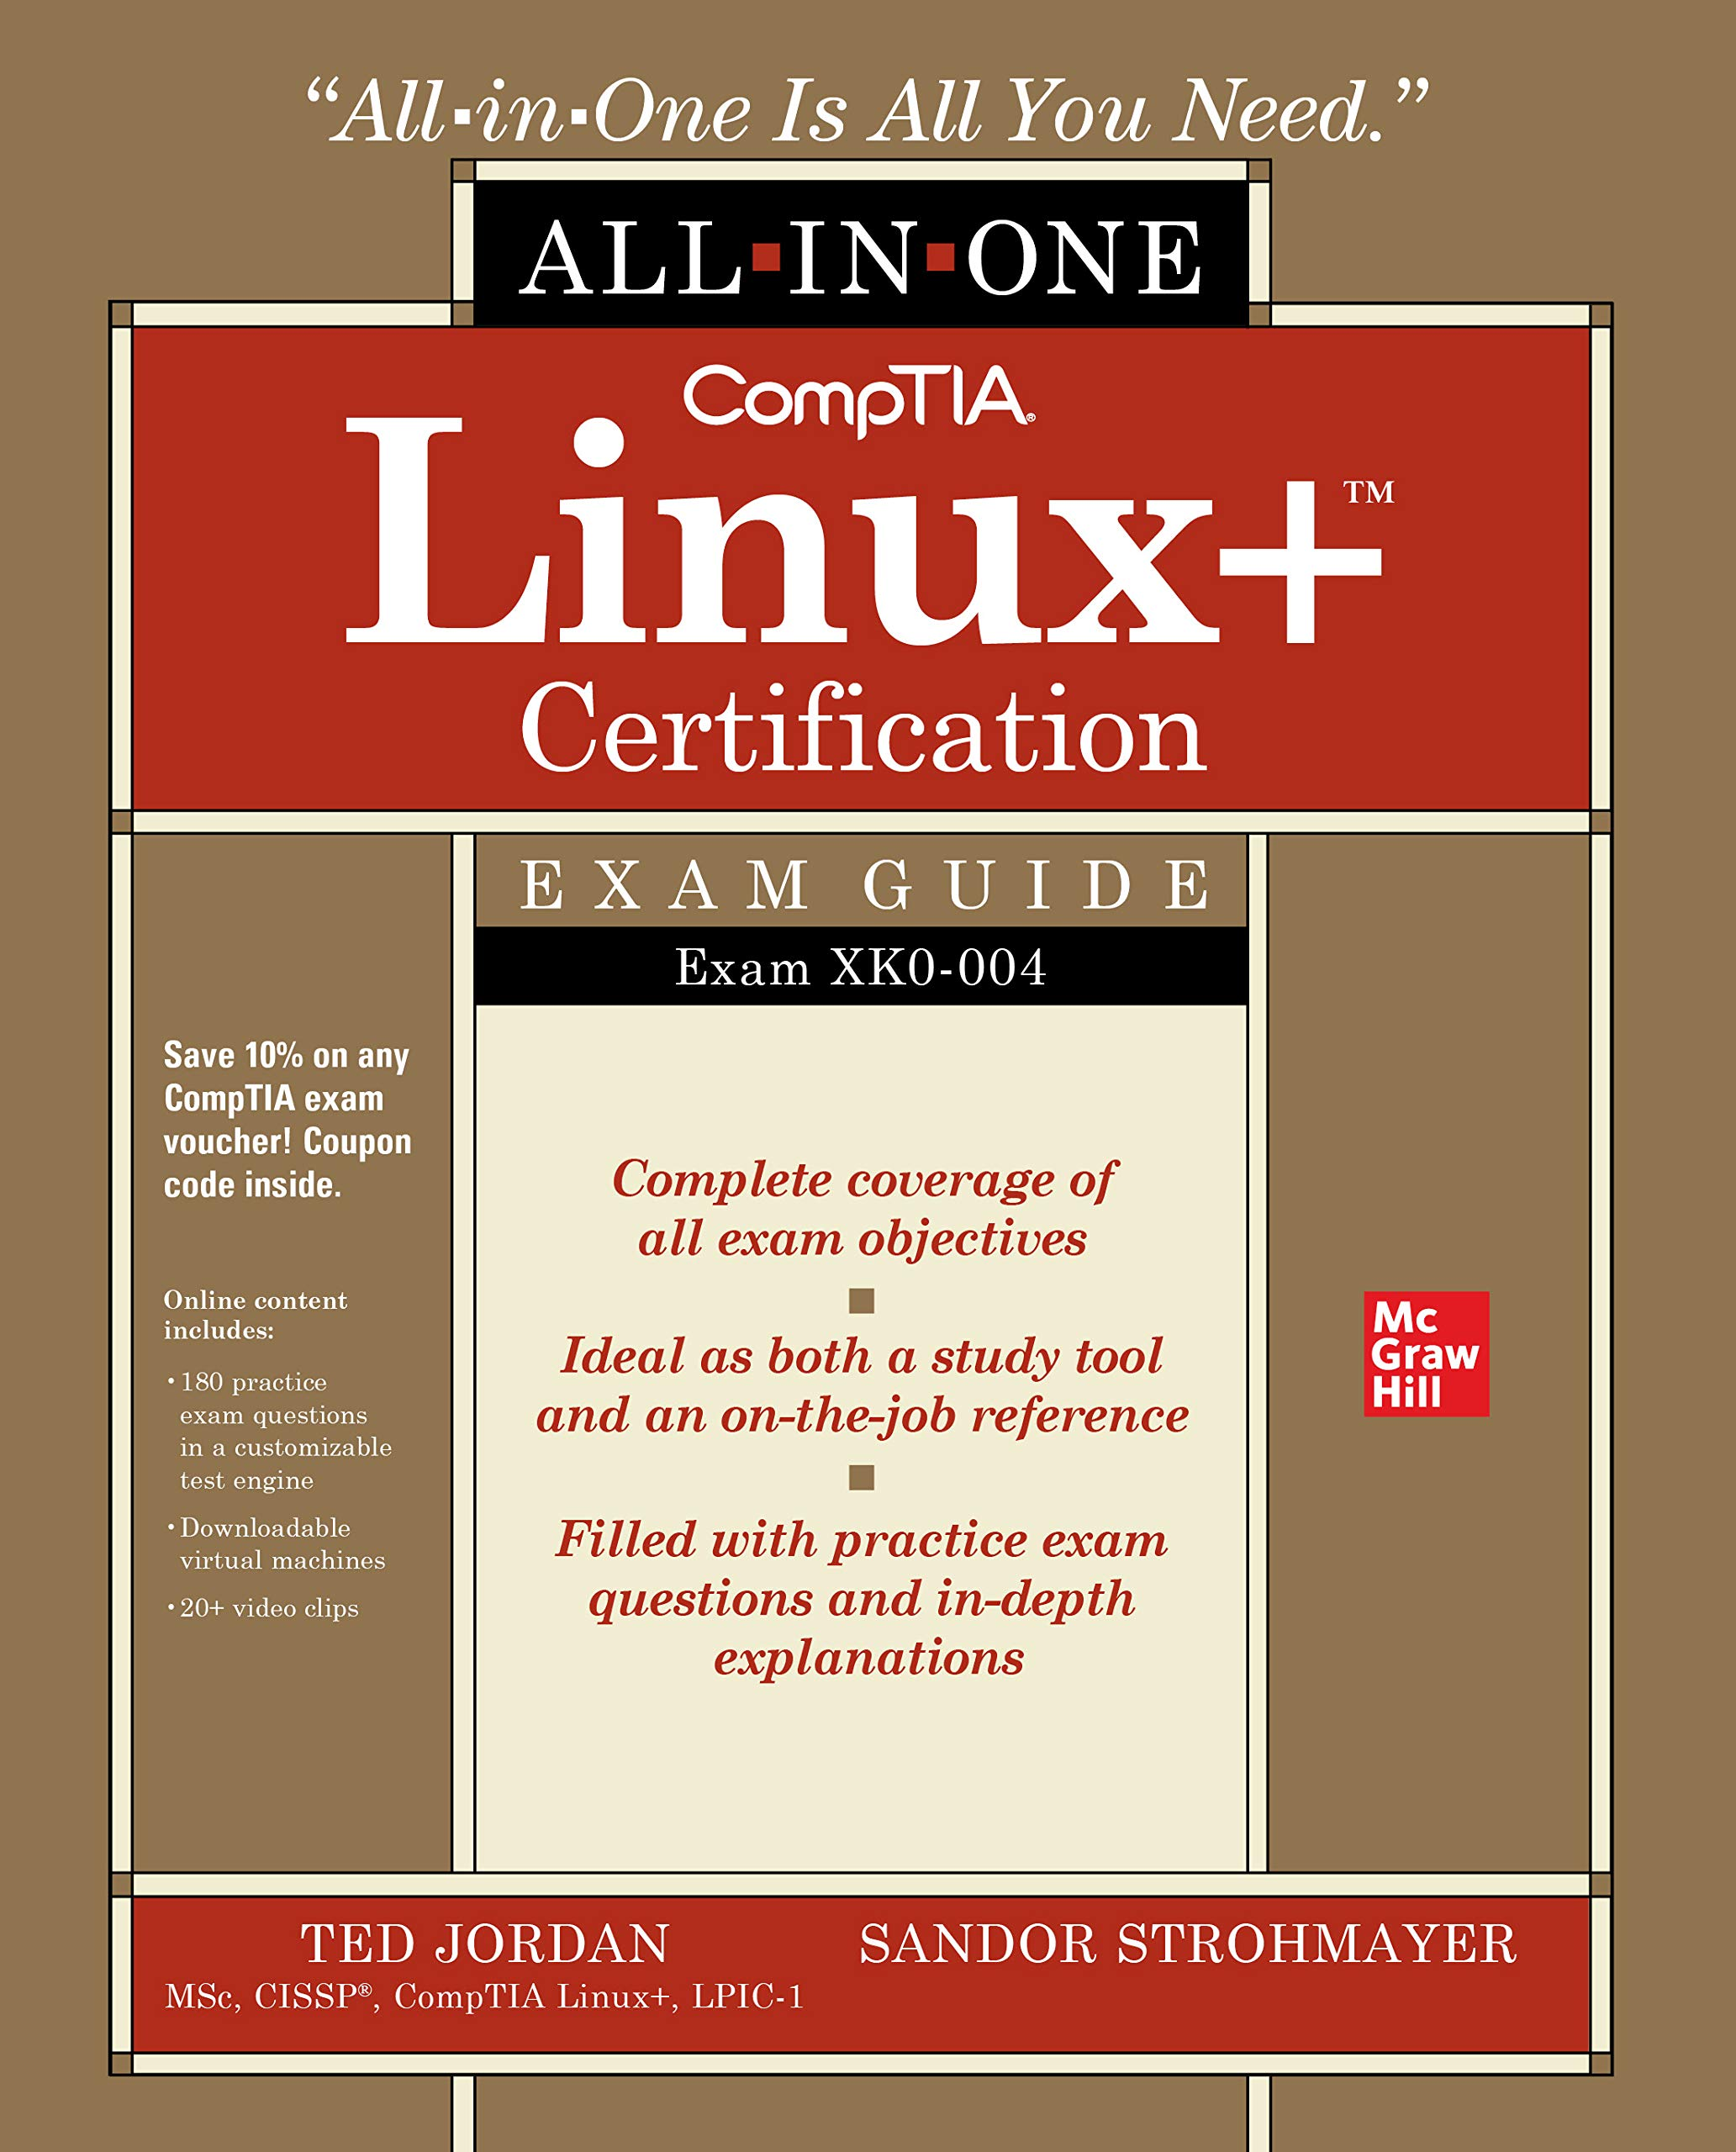 Comptia A+ Certification Study Guide Pdf Free Download